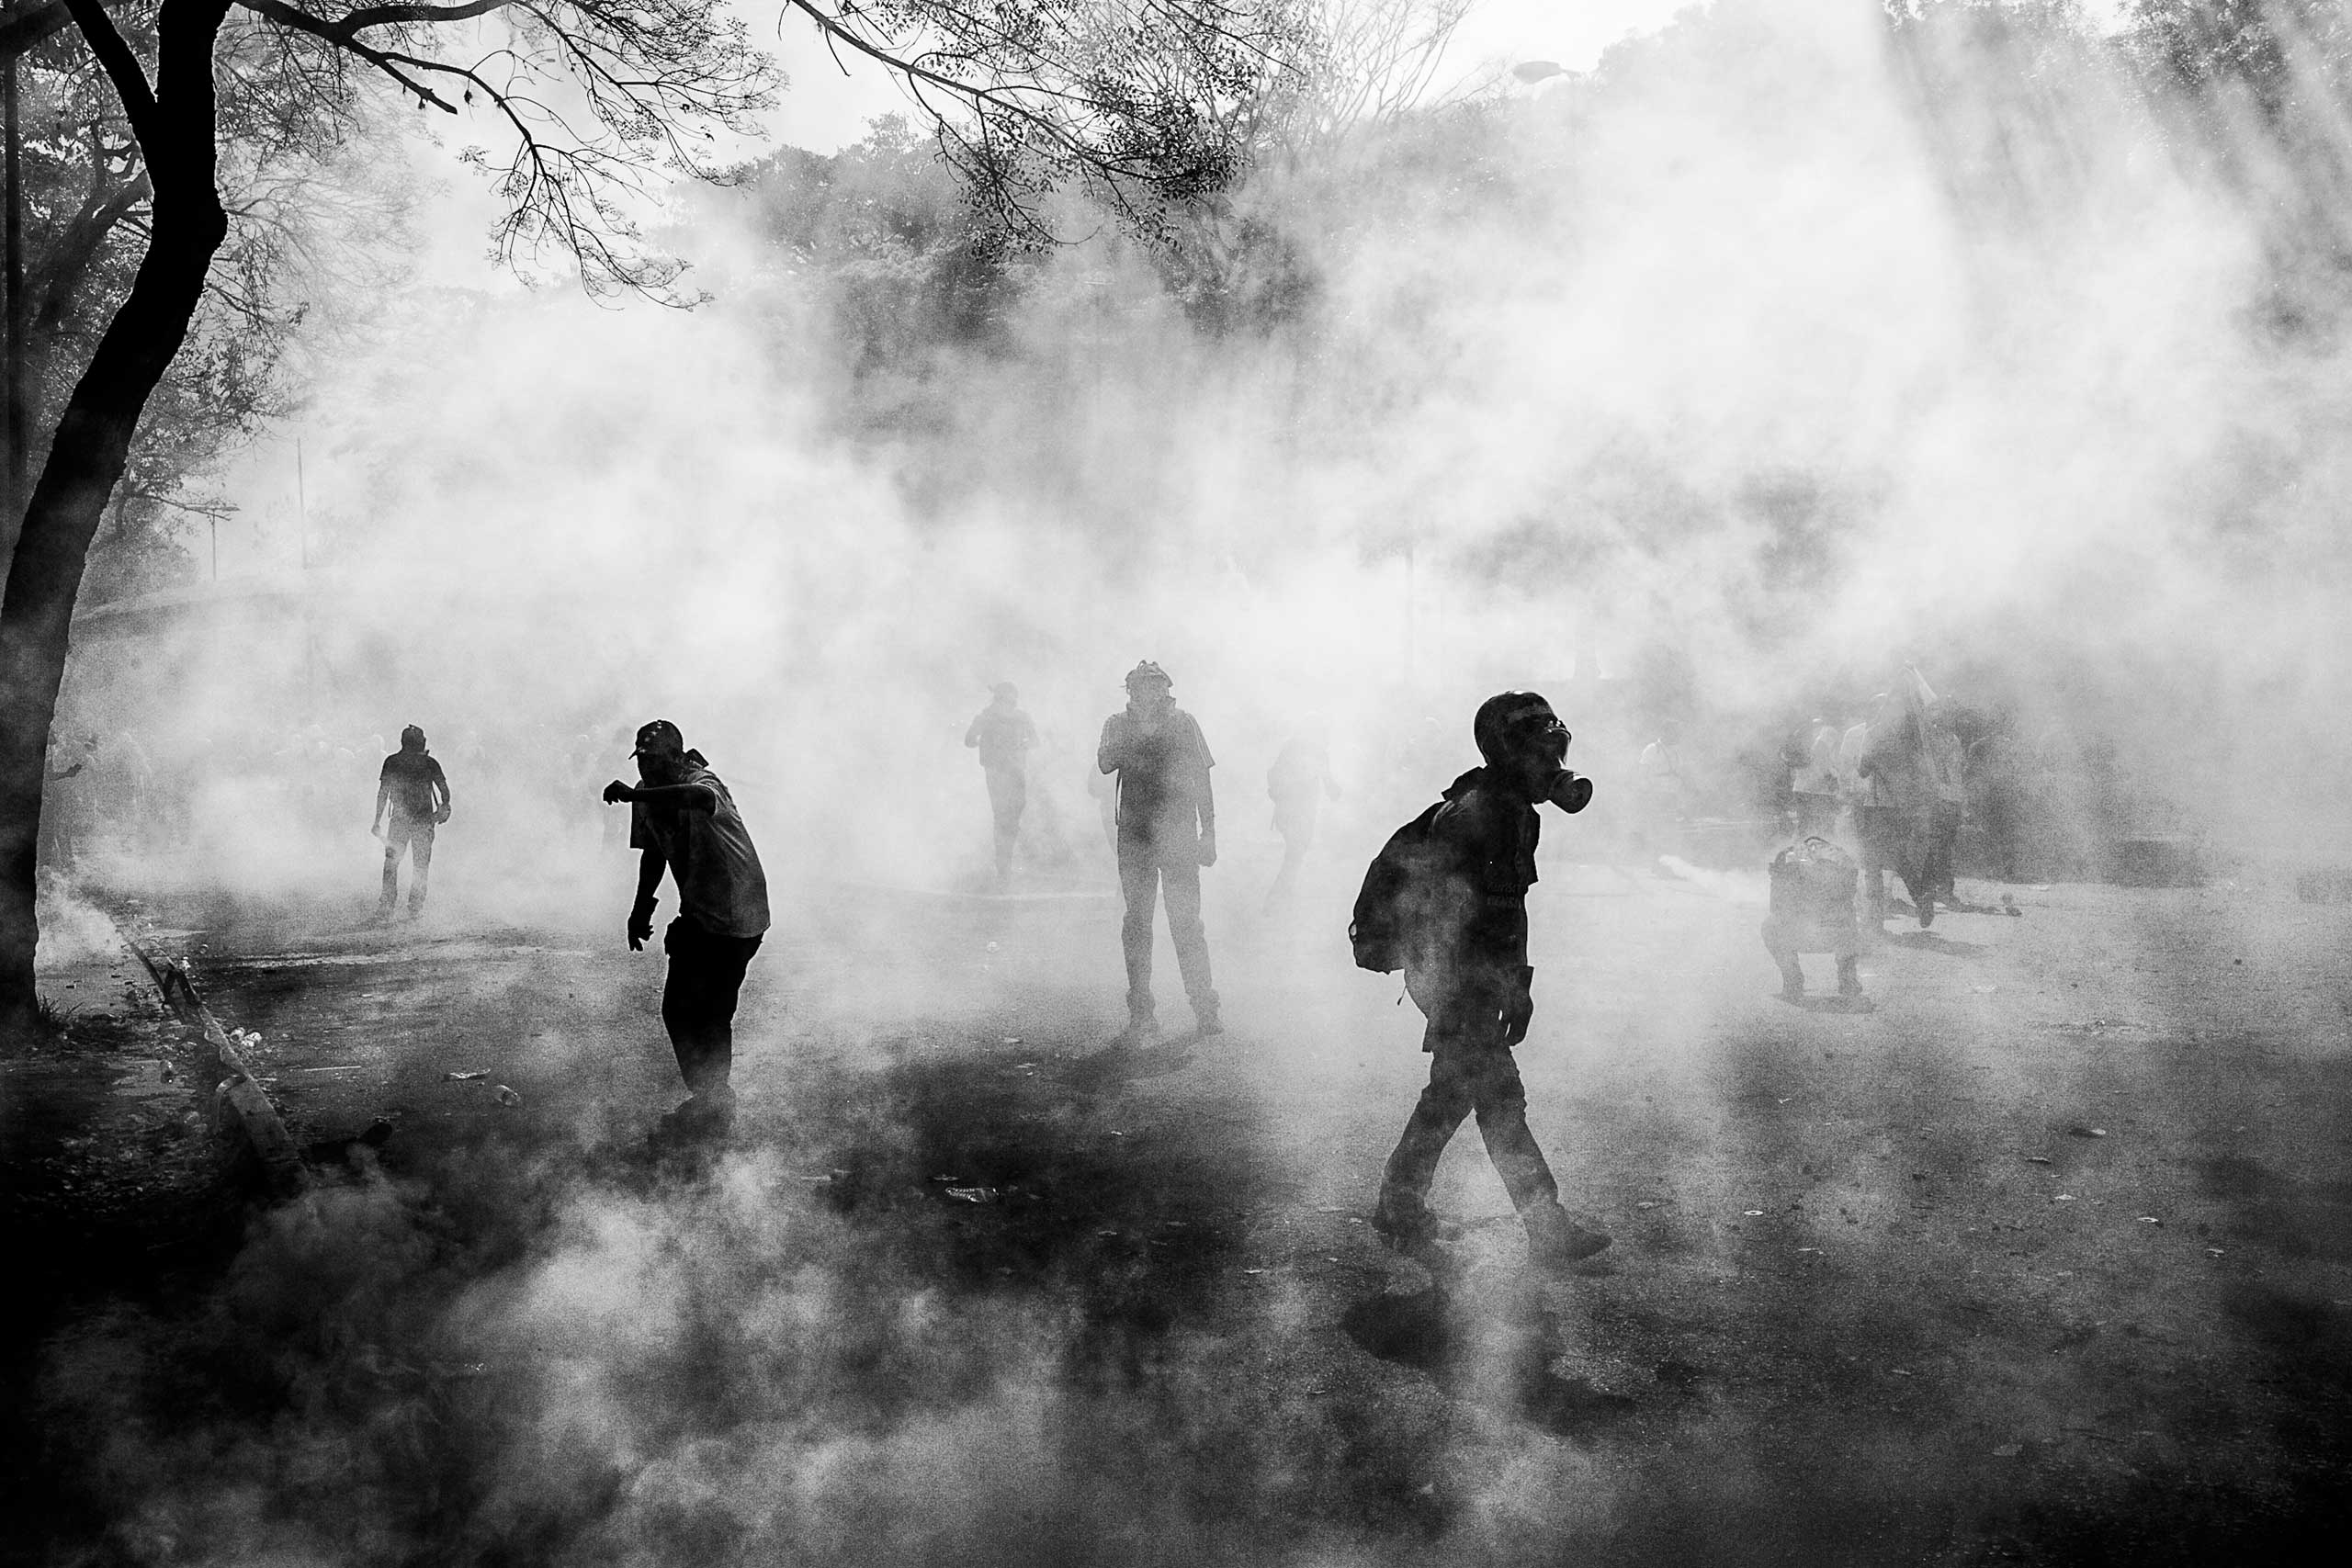 Demonstrators walk through a cloud of tear gas fired by the Bolivarian National Guard [?] during clashes between antigovernment protestors and government security forces. Caracas, March 2014.